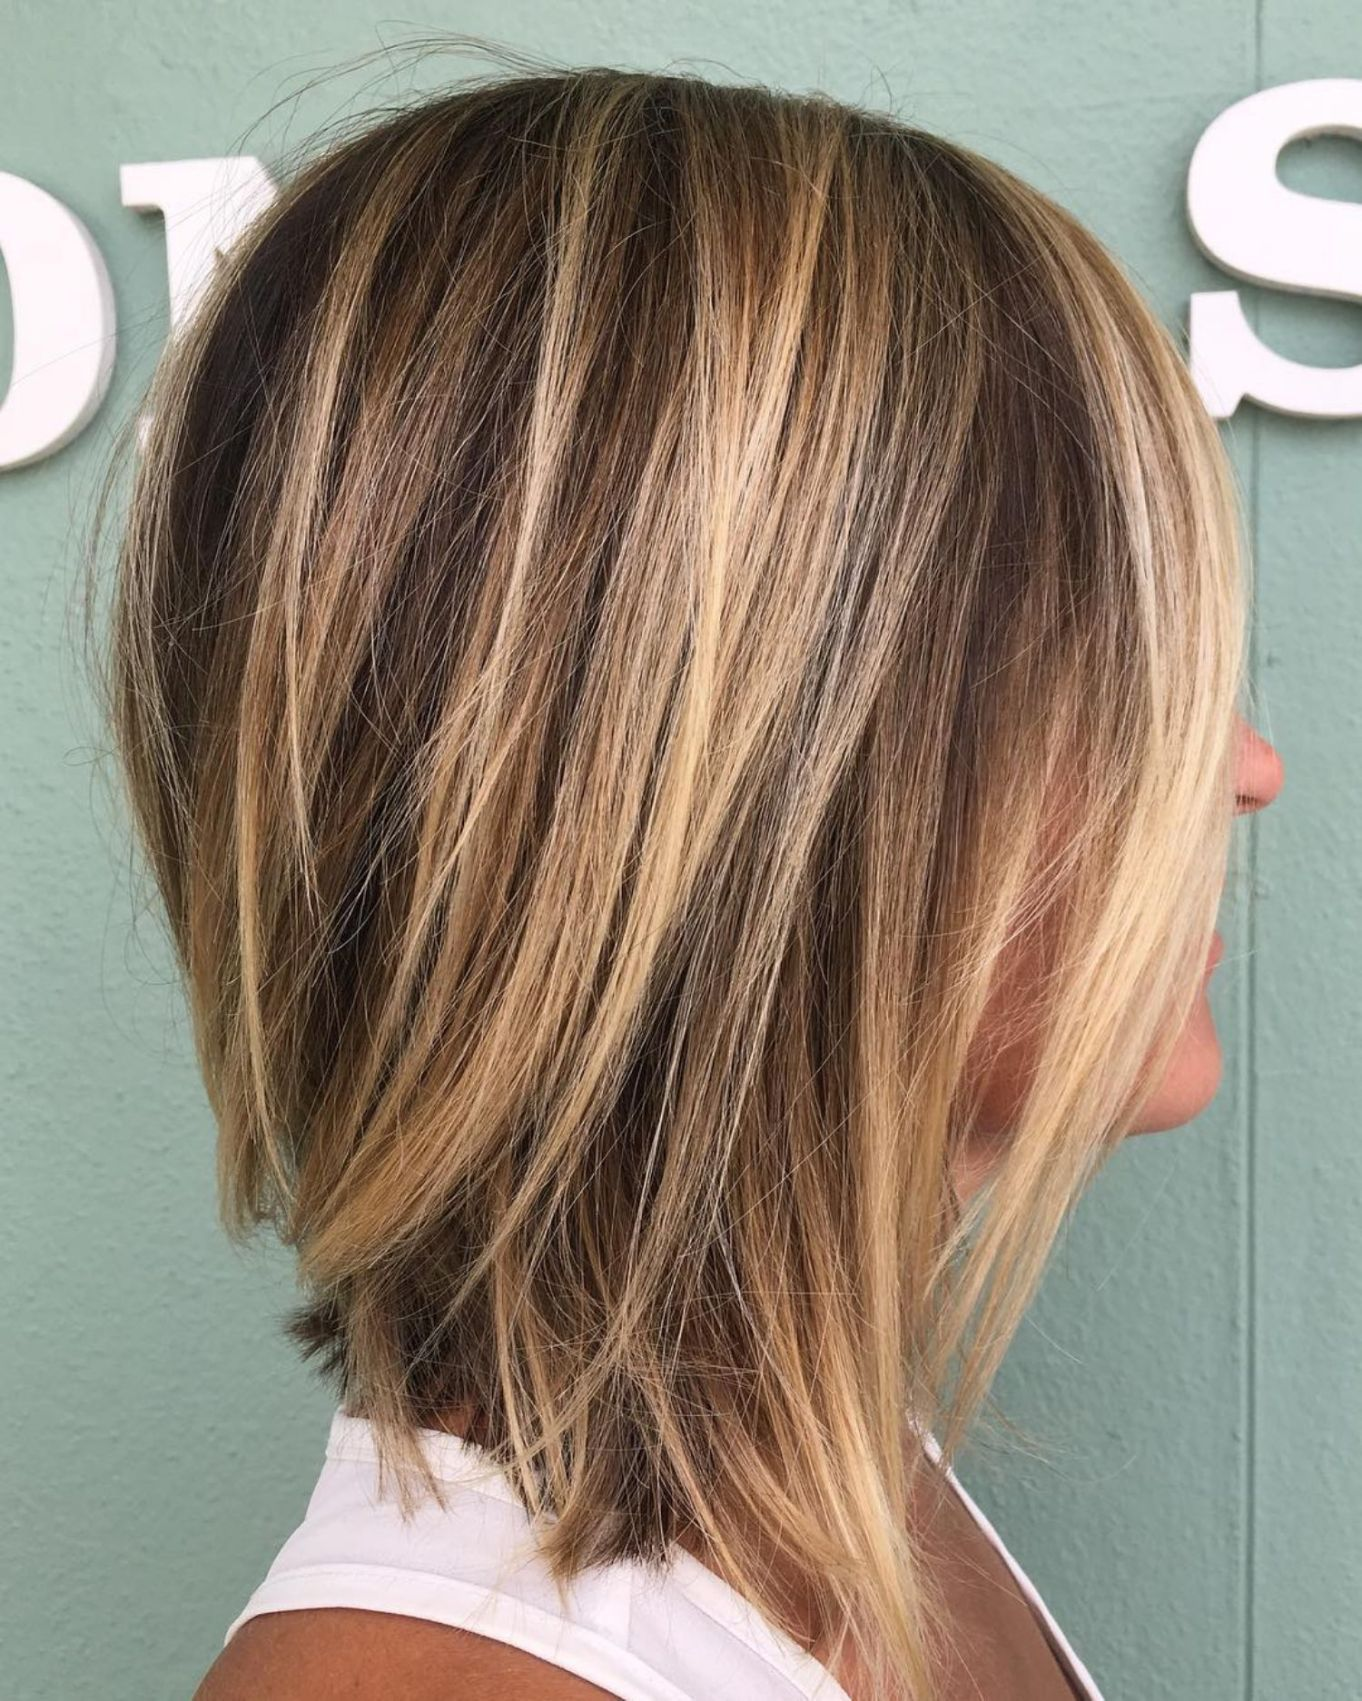 70 Brightest Medium Layered Haircuts To Light You Up 70 Brightest Medium Leng Brightest In 2020 Long Thin Hair Medium Layered Haircuts Medium Length Hair Styles